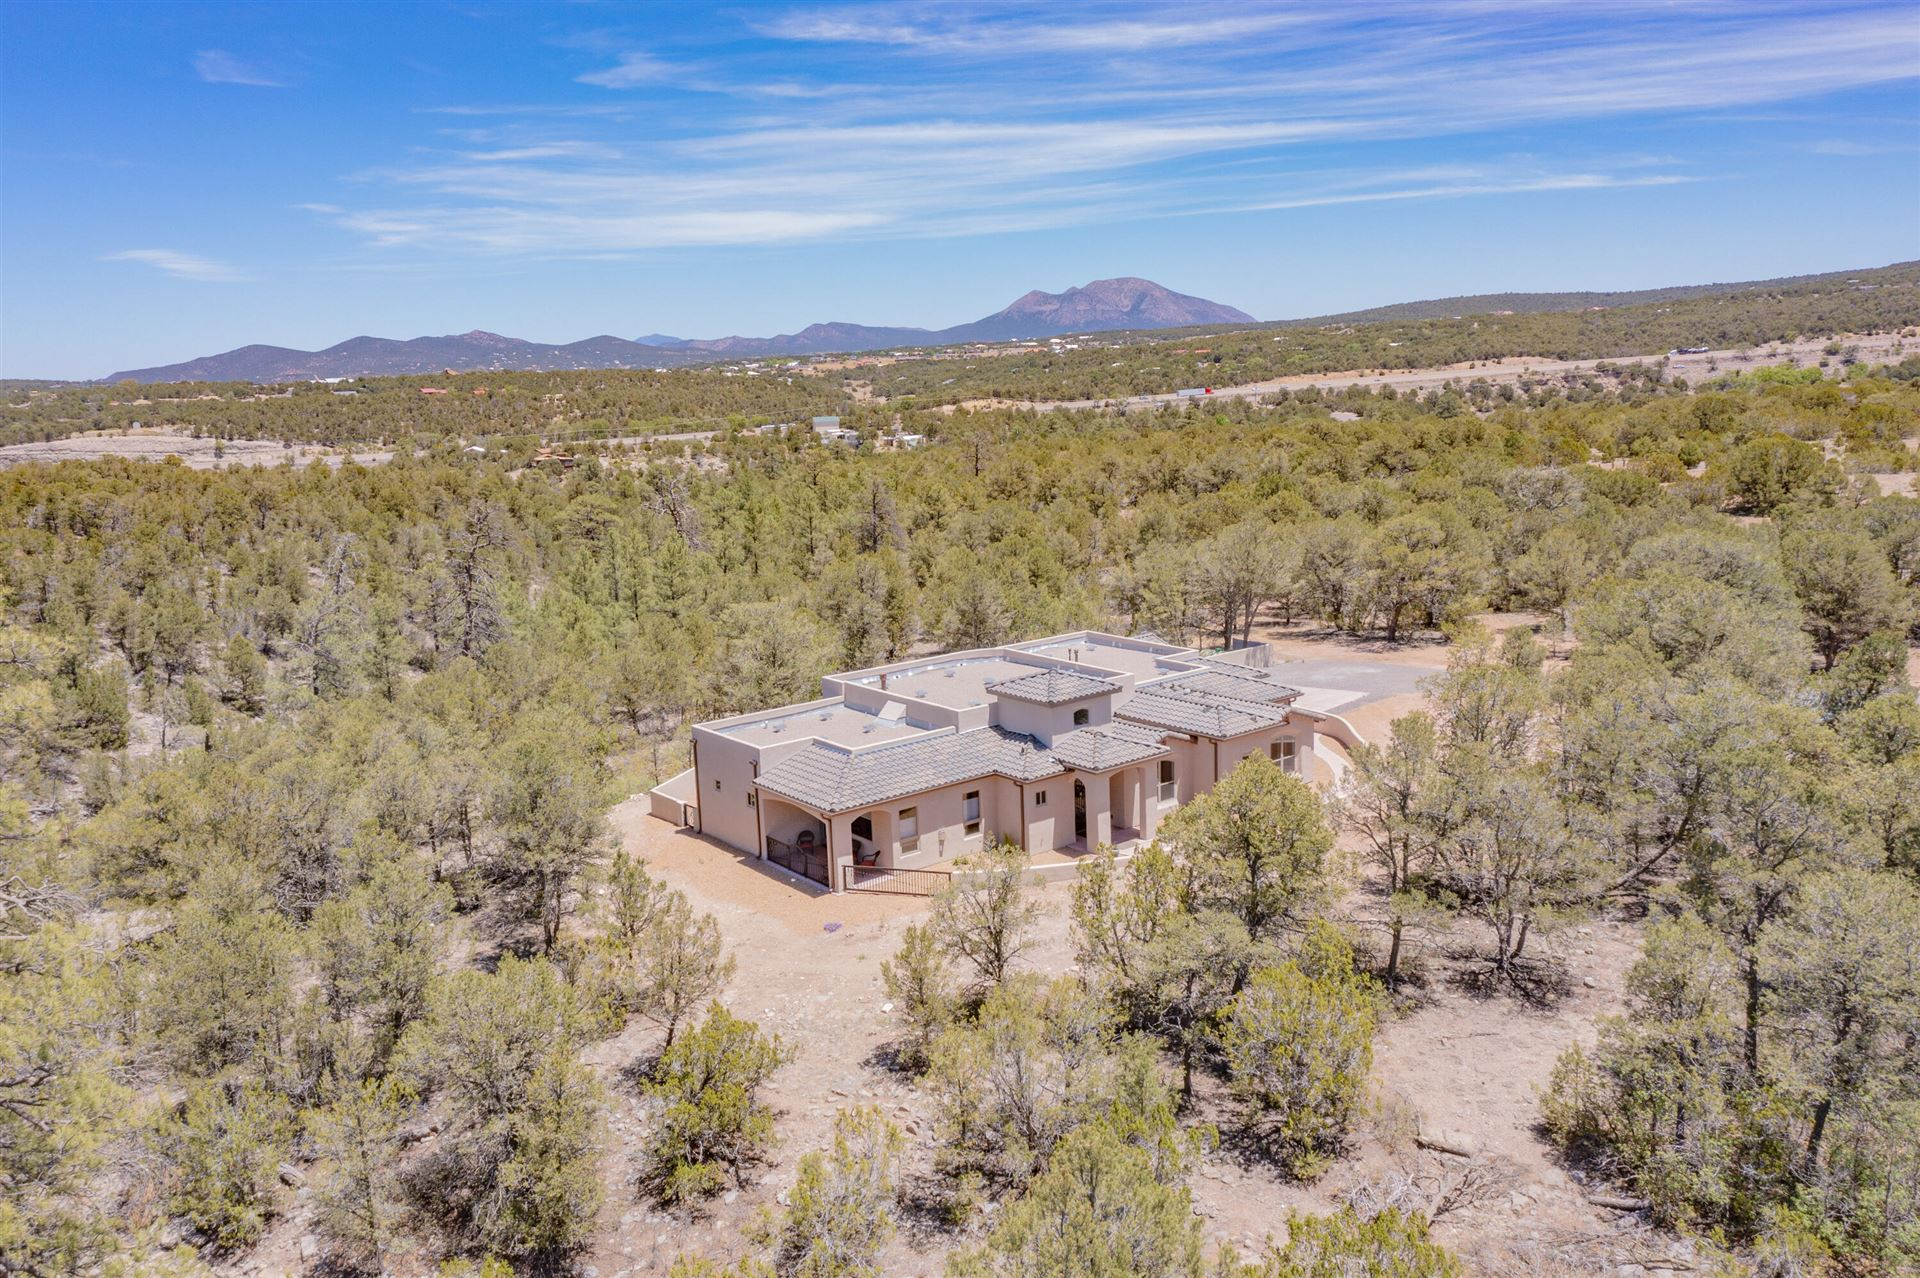 19 Coyote Canyon Trail, Tijeras, NM 87059 - MLS#: 991507